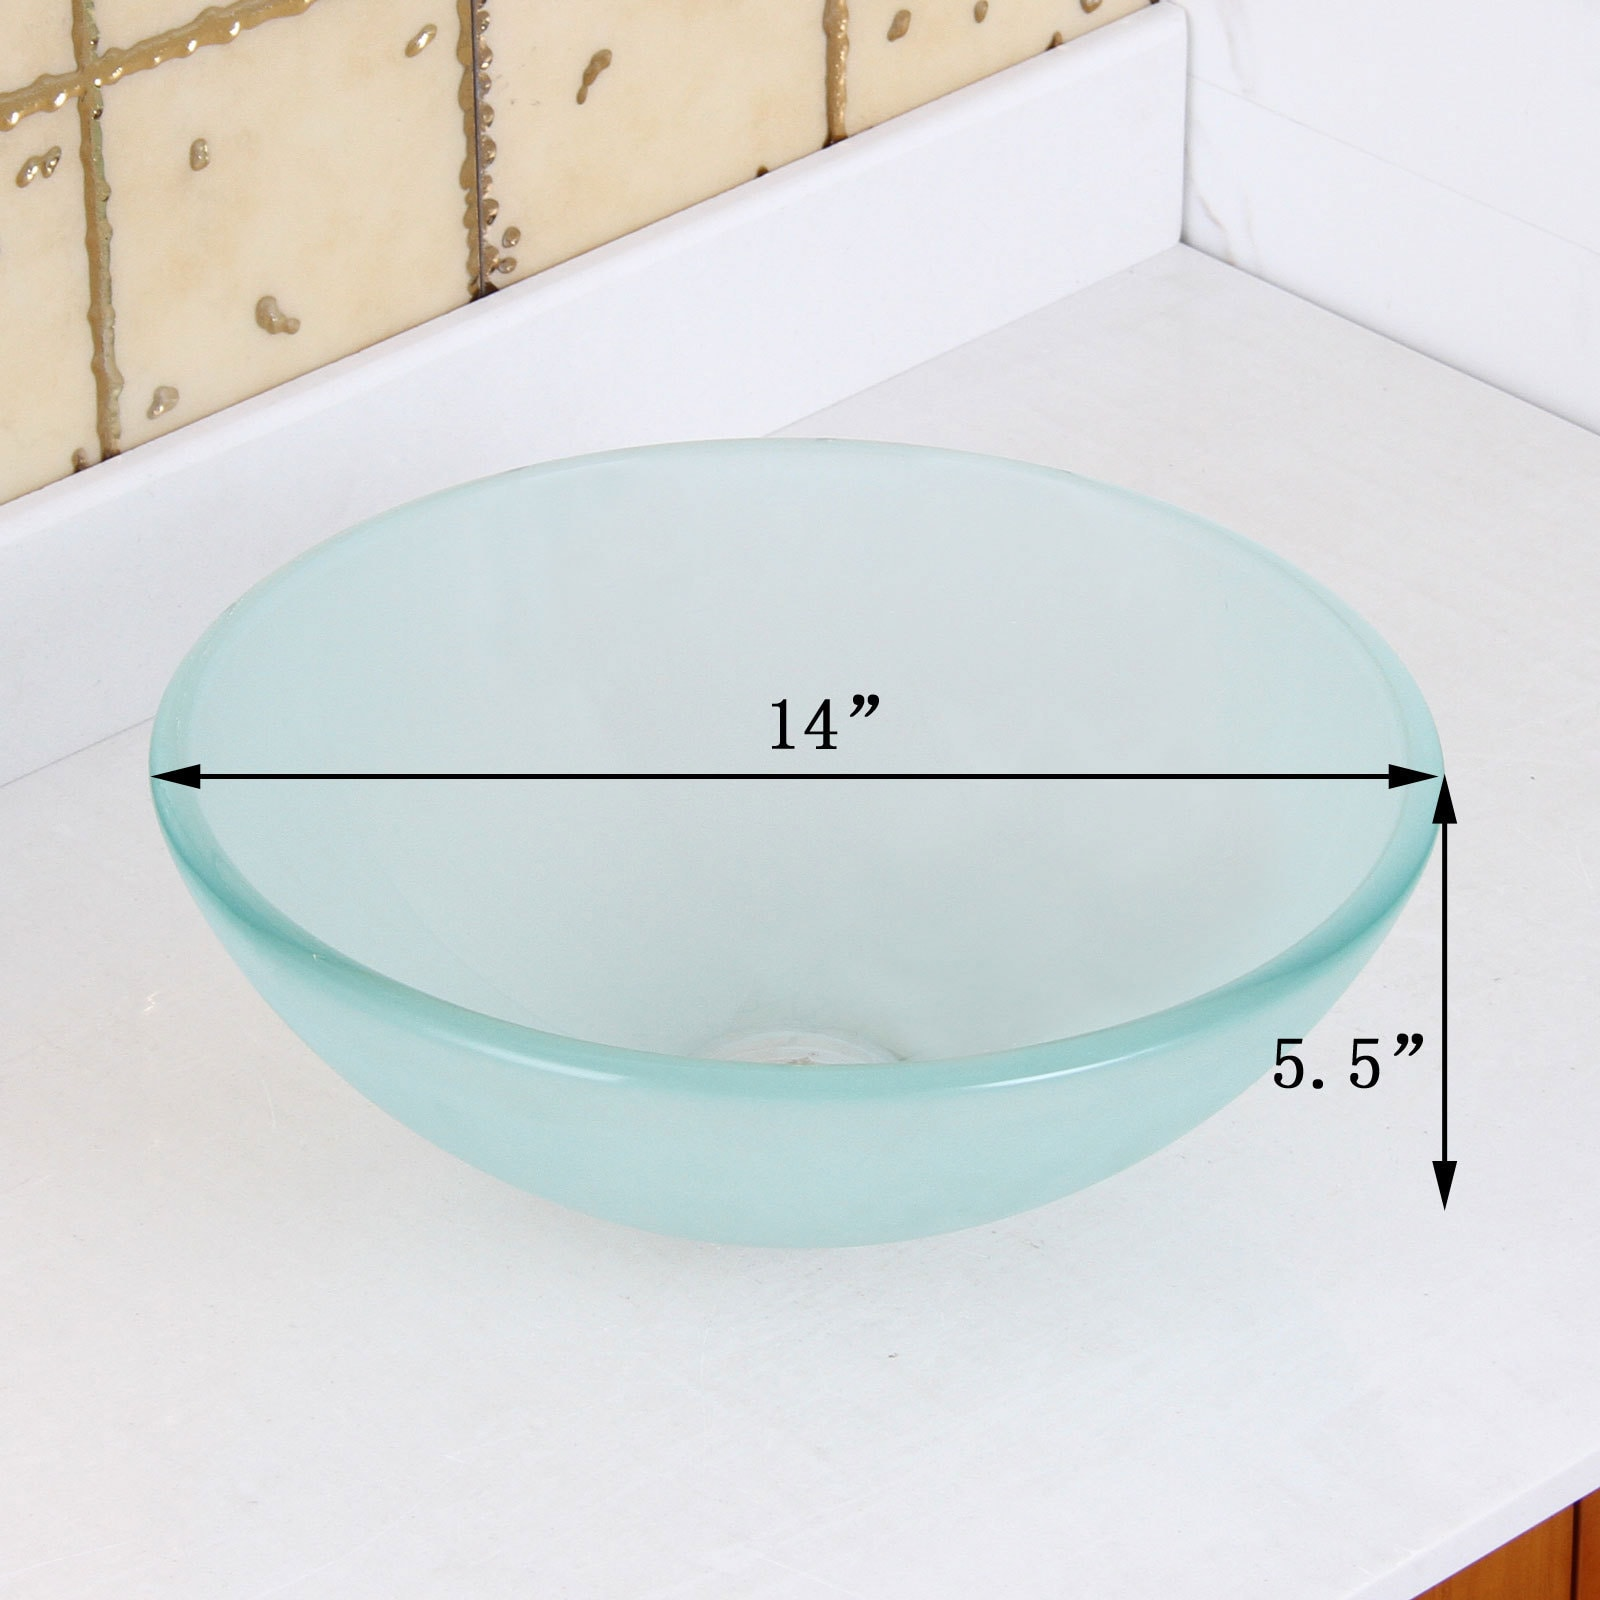 Elite GD08S/ F22T Small Frosted Tempered Glass Bathroom Vessel Sink ...